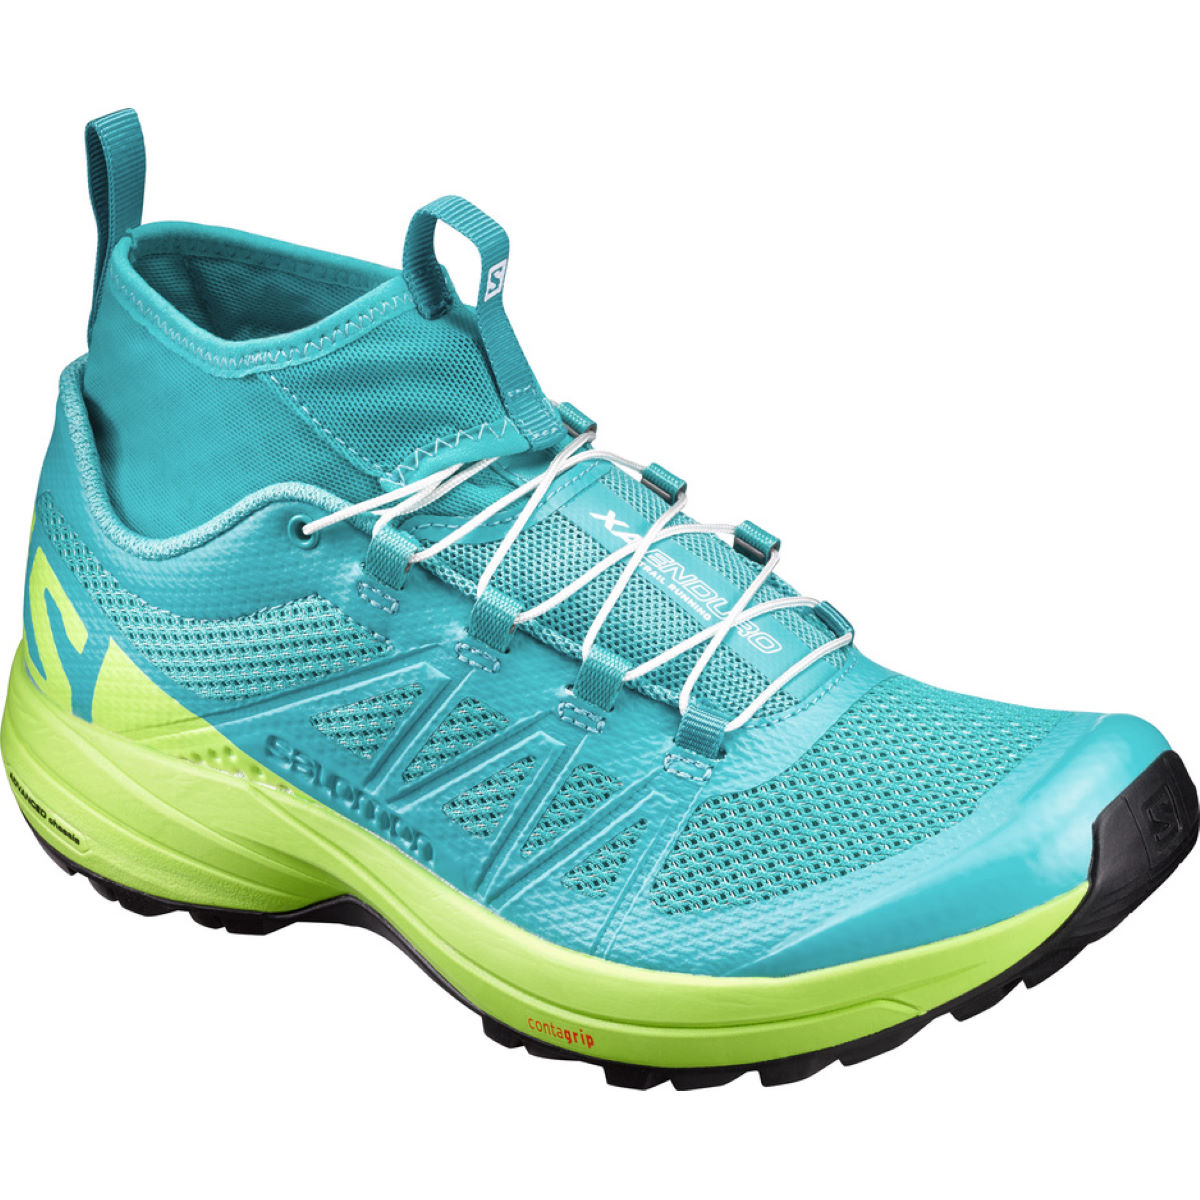 Chaussures Femme Salomon XA Enduro - 7,5 UK Ceramic/Lime